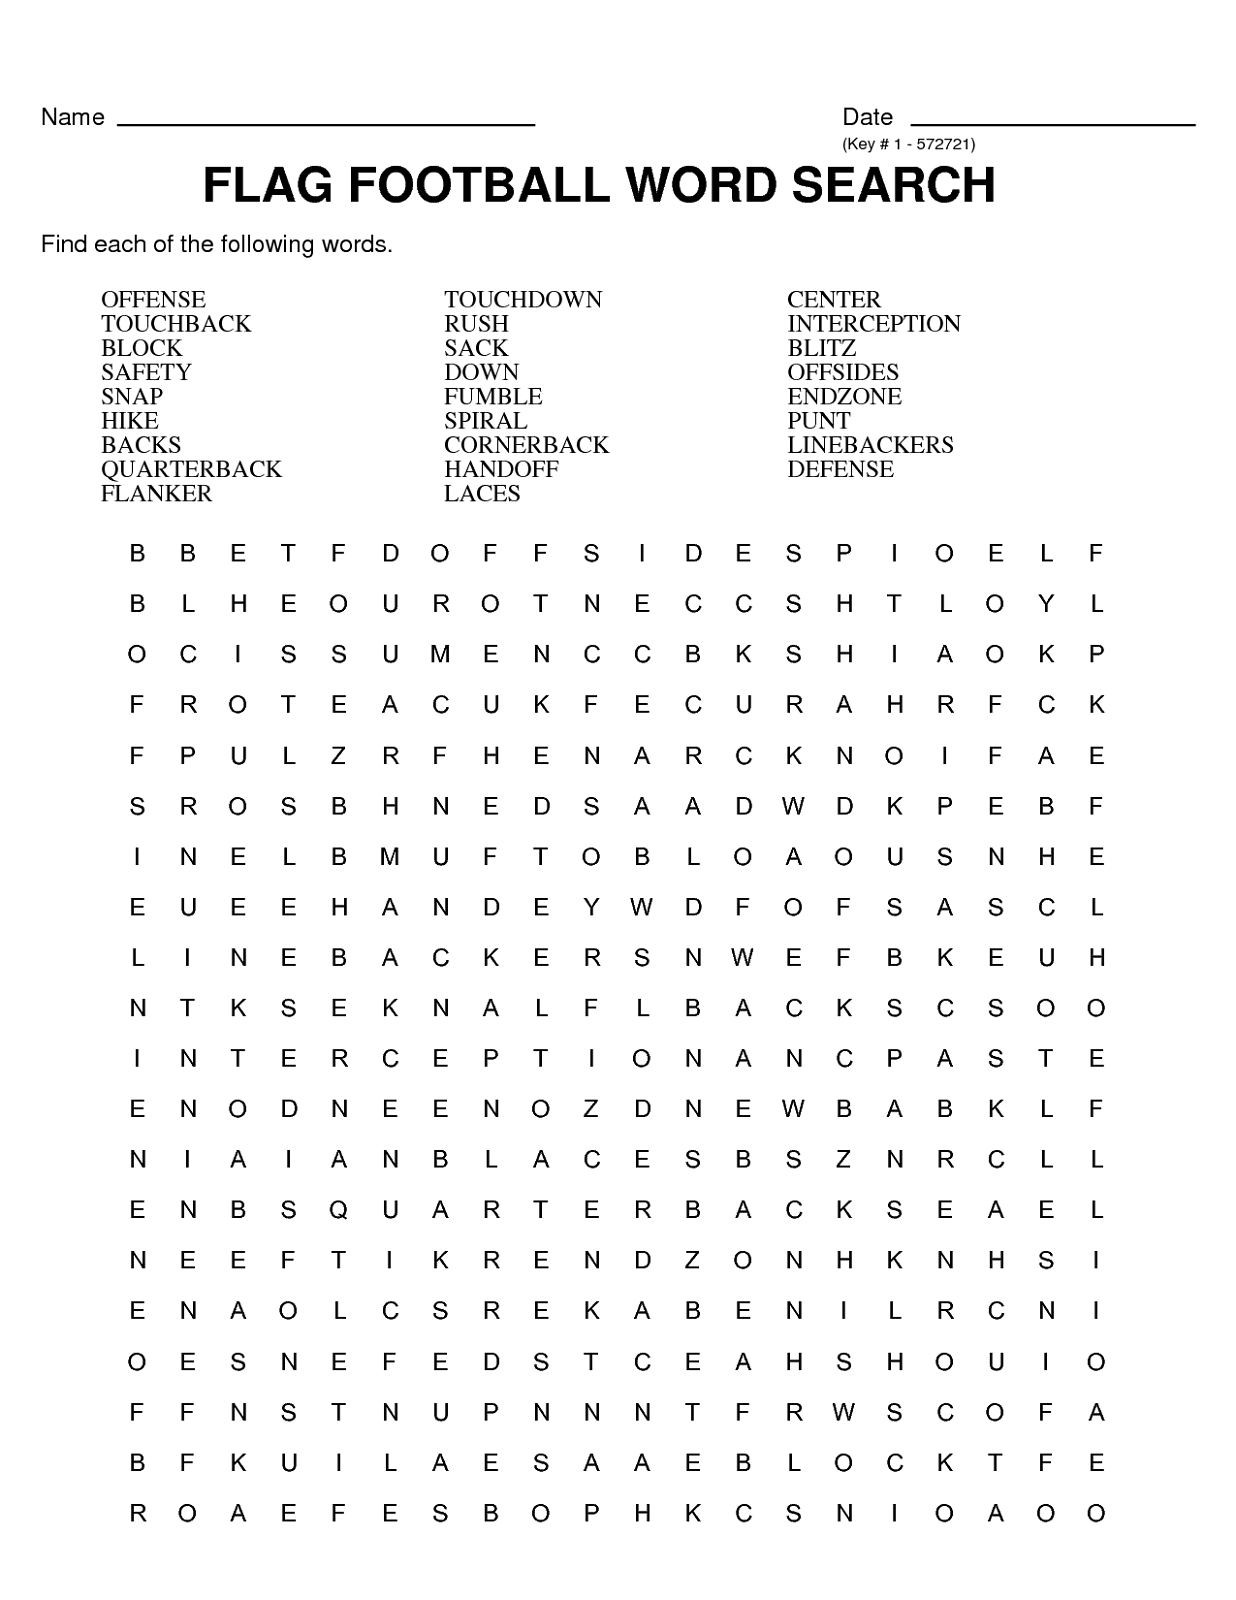 soccer-word-search-flag